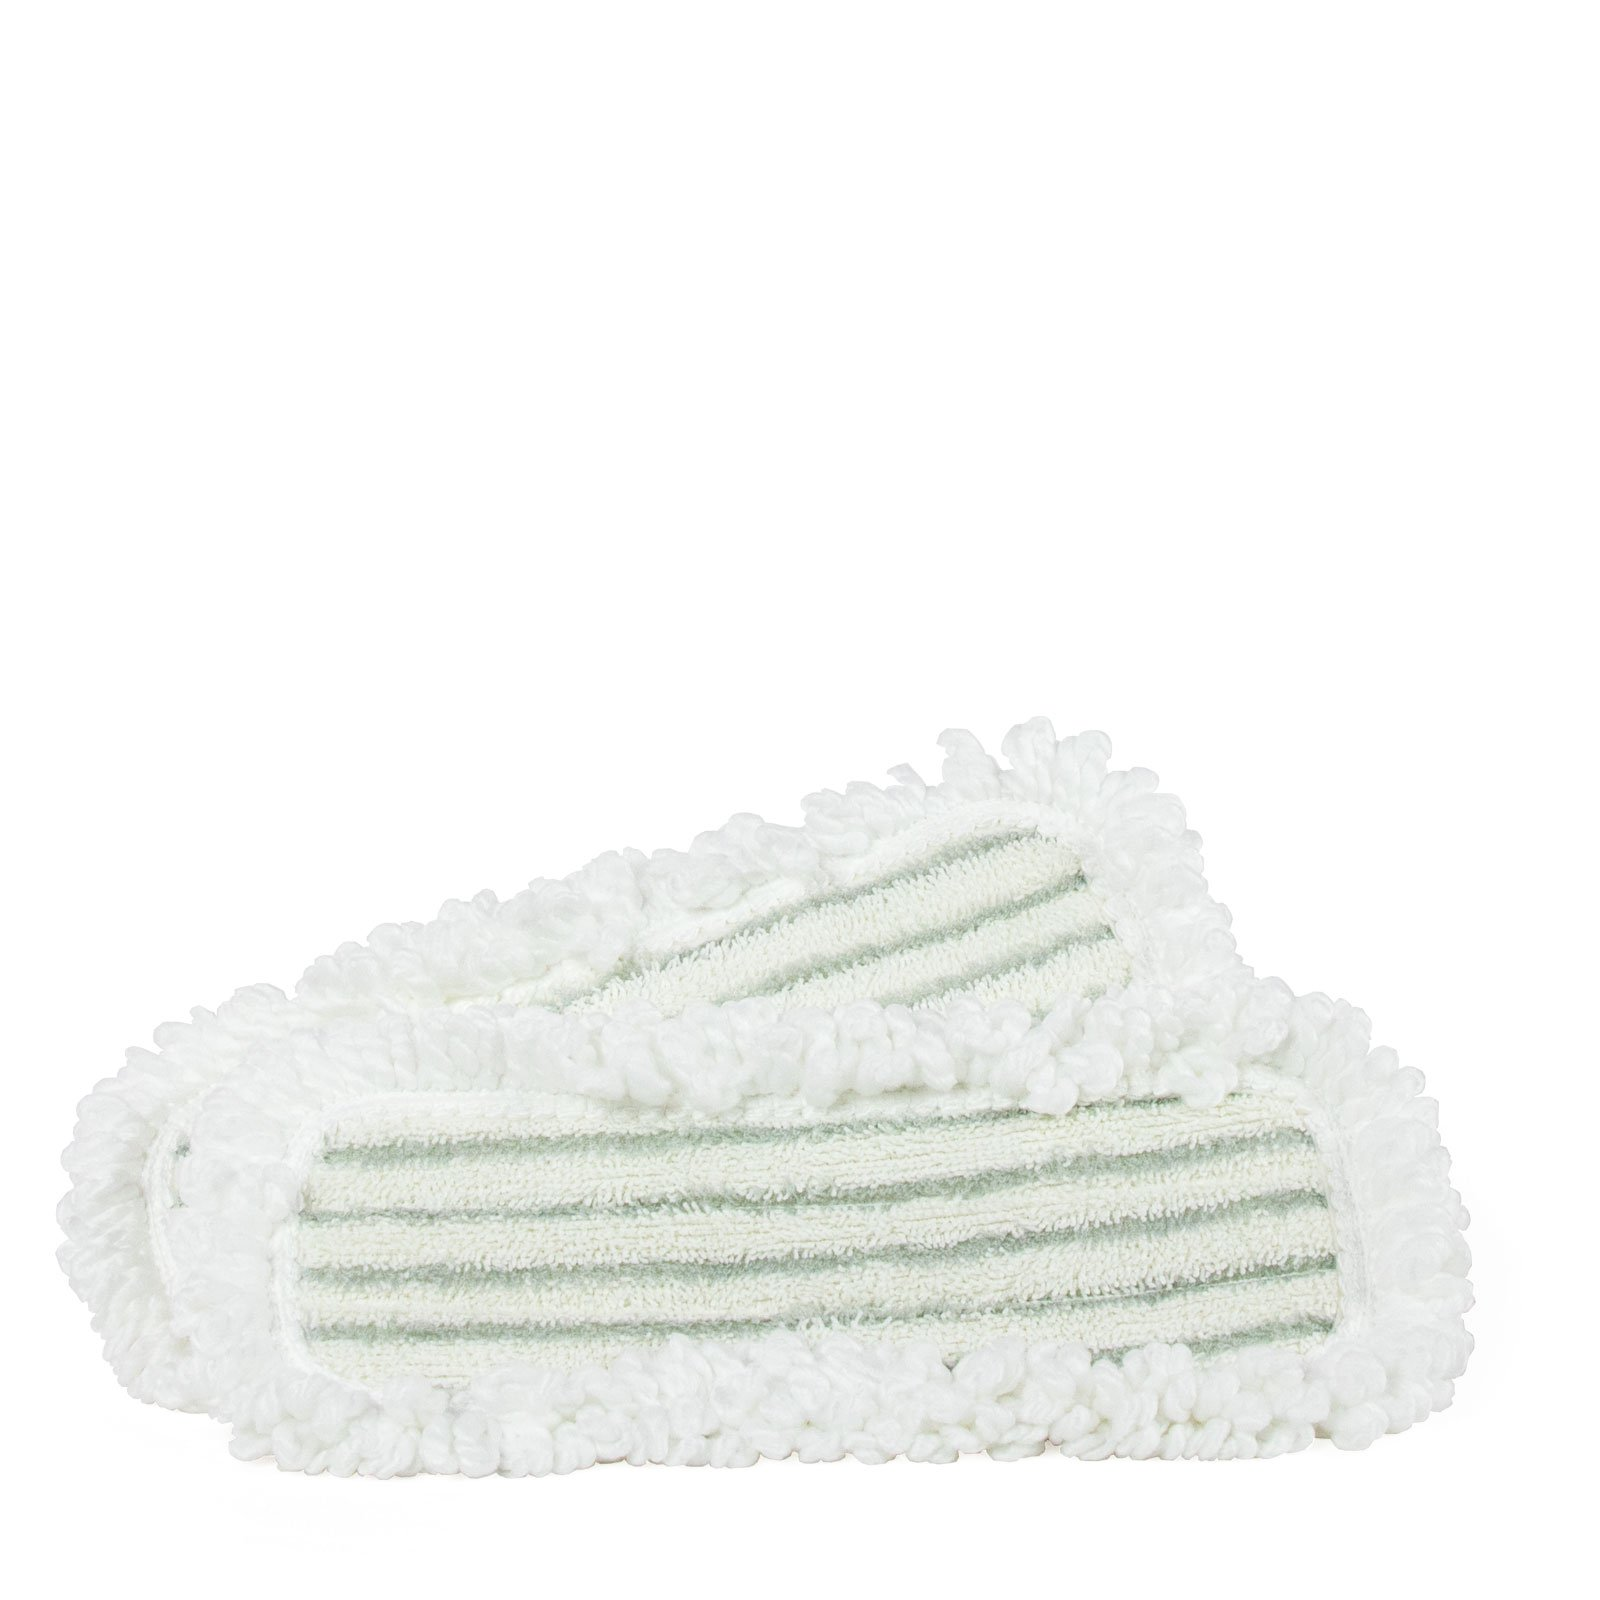 Nellie's WOW Dry Floor Replacement Pads